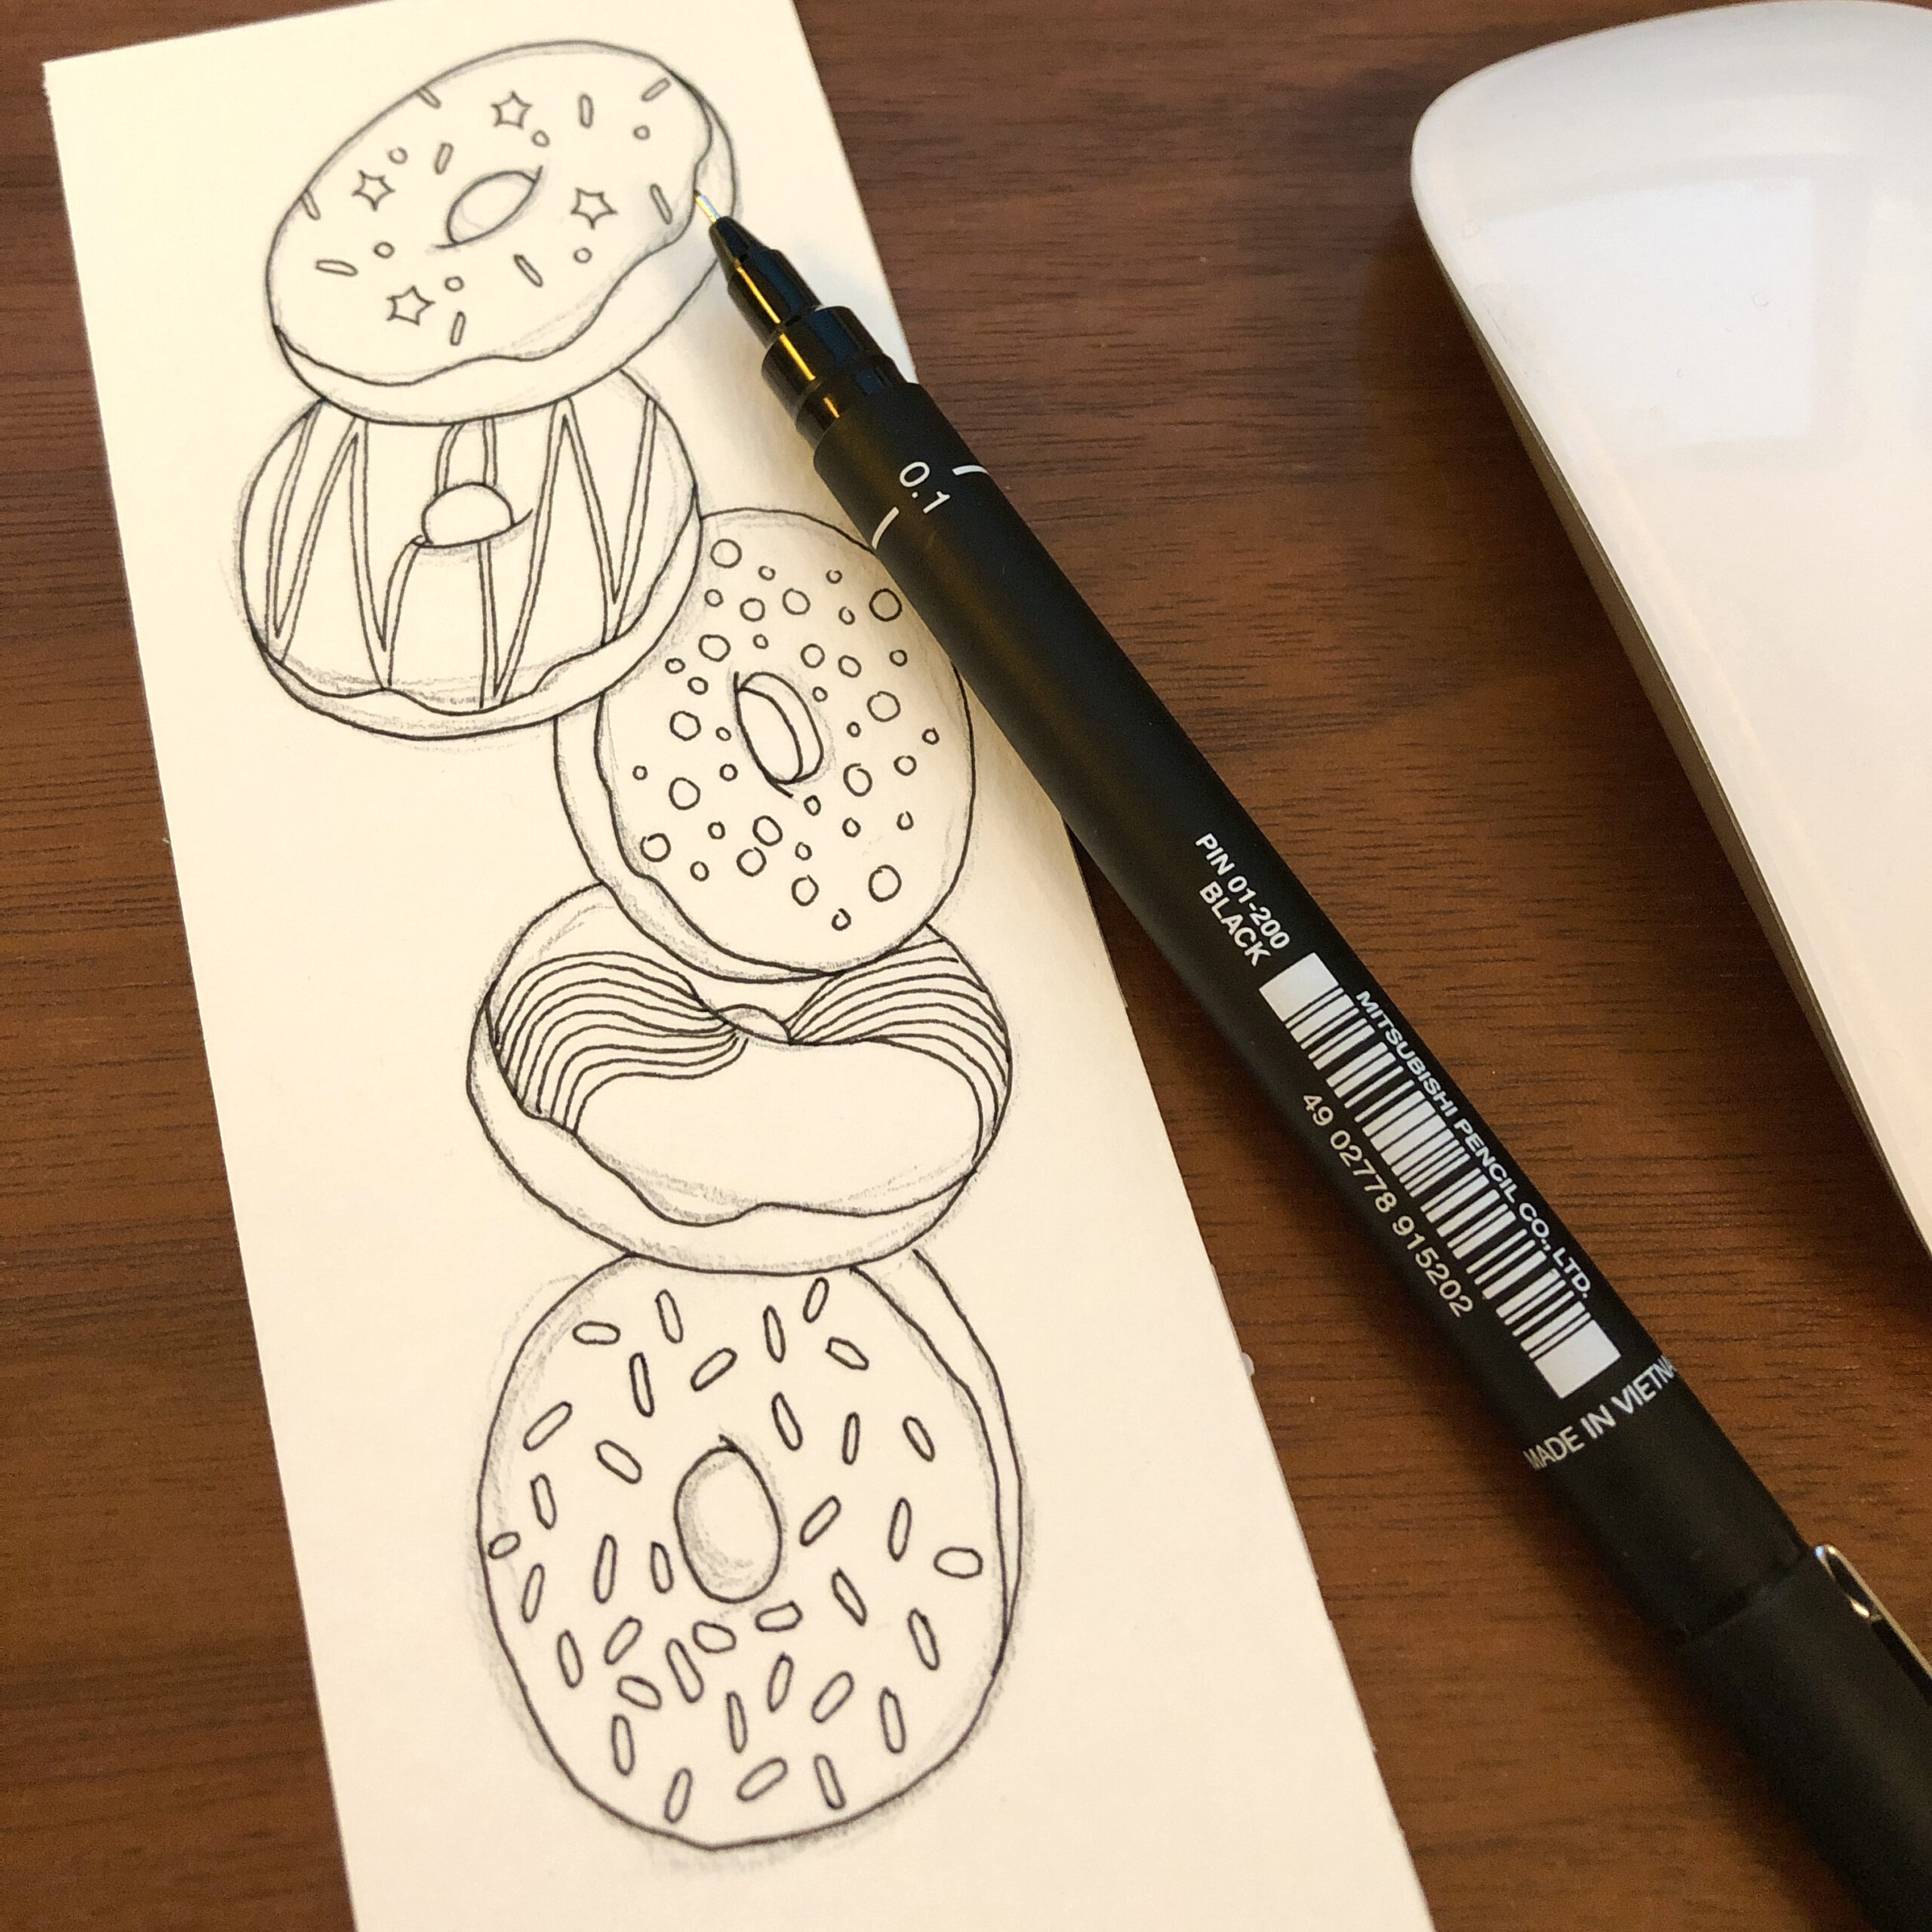 Line drawing of five falling doughnuts with sprinkles on a bookmark